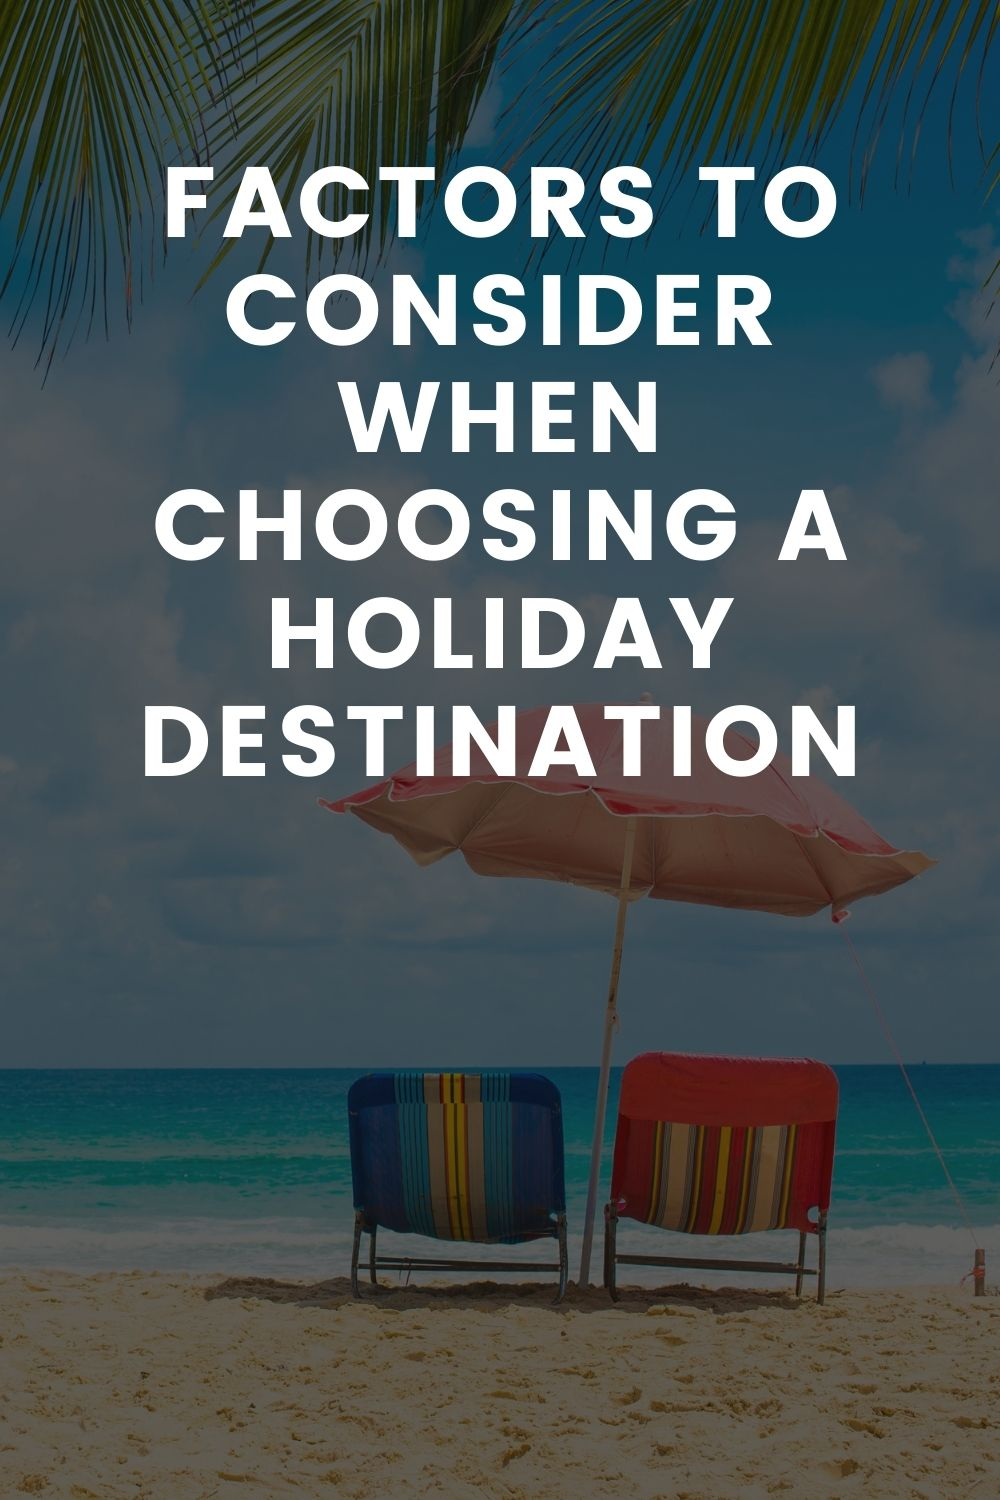 Factors To Consider When Choosing A Holiday Destination